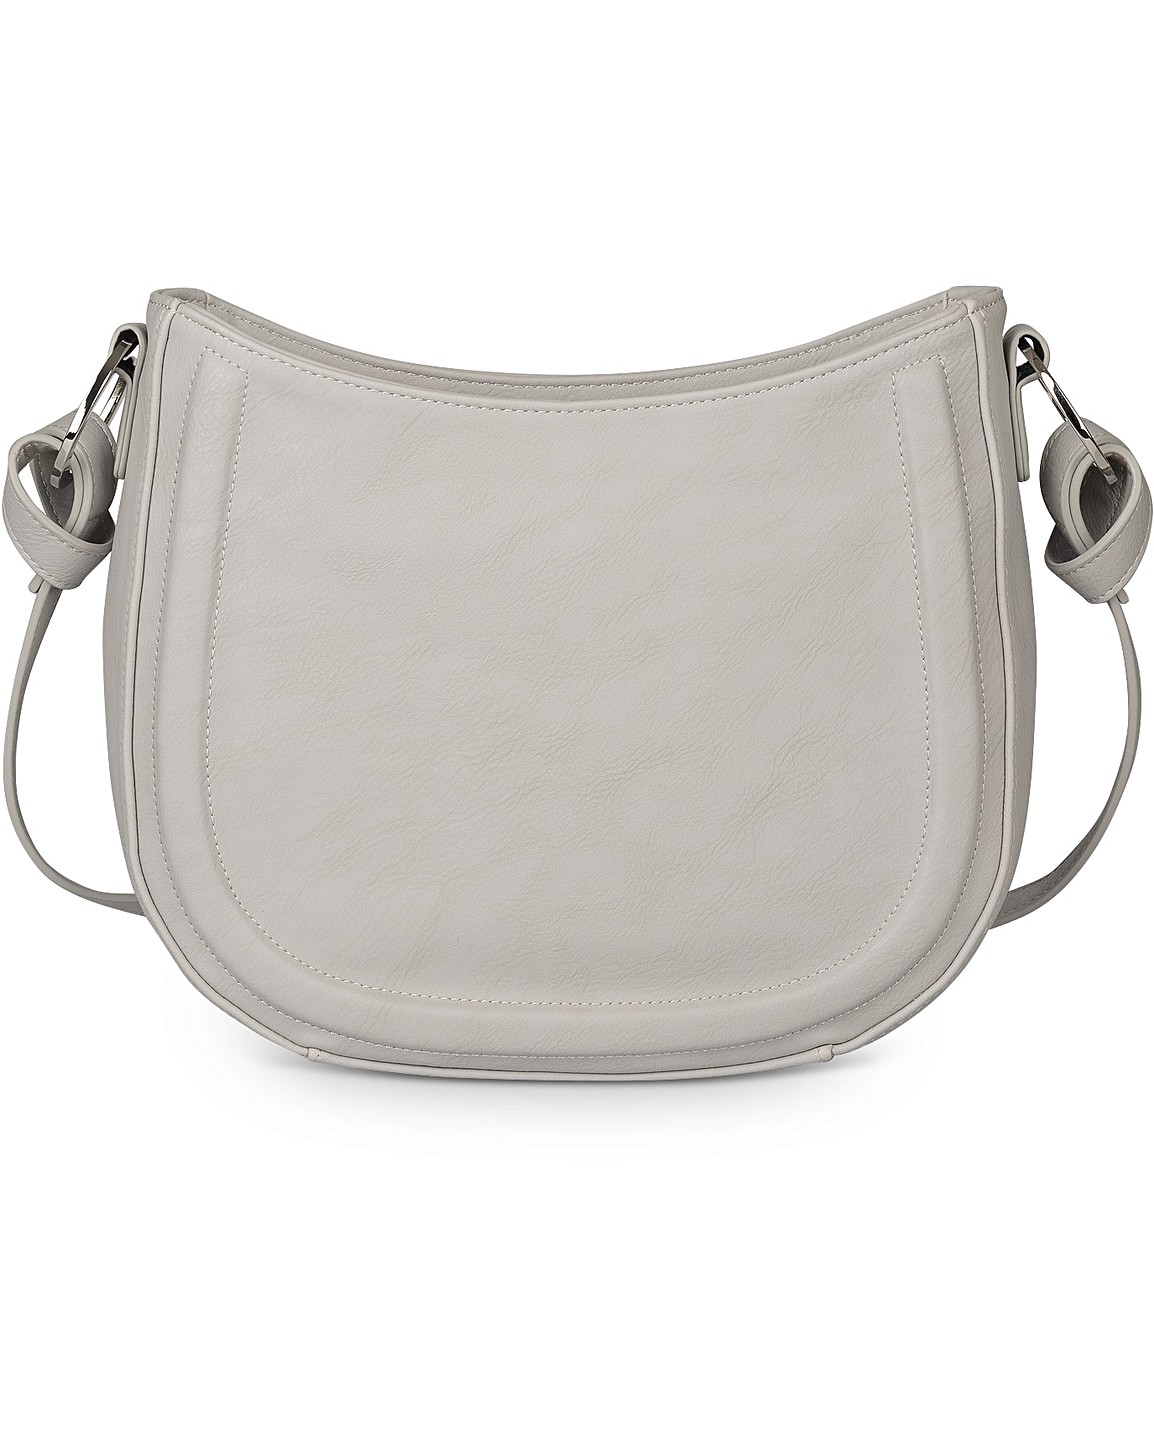 d00492842b89 Isla Grey Cross Body Bag